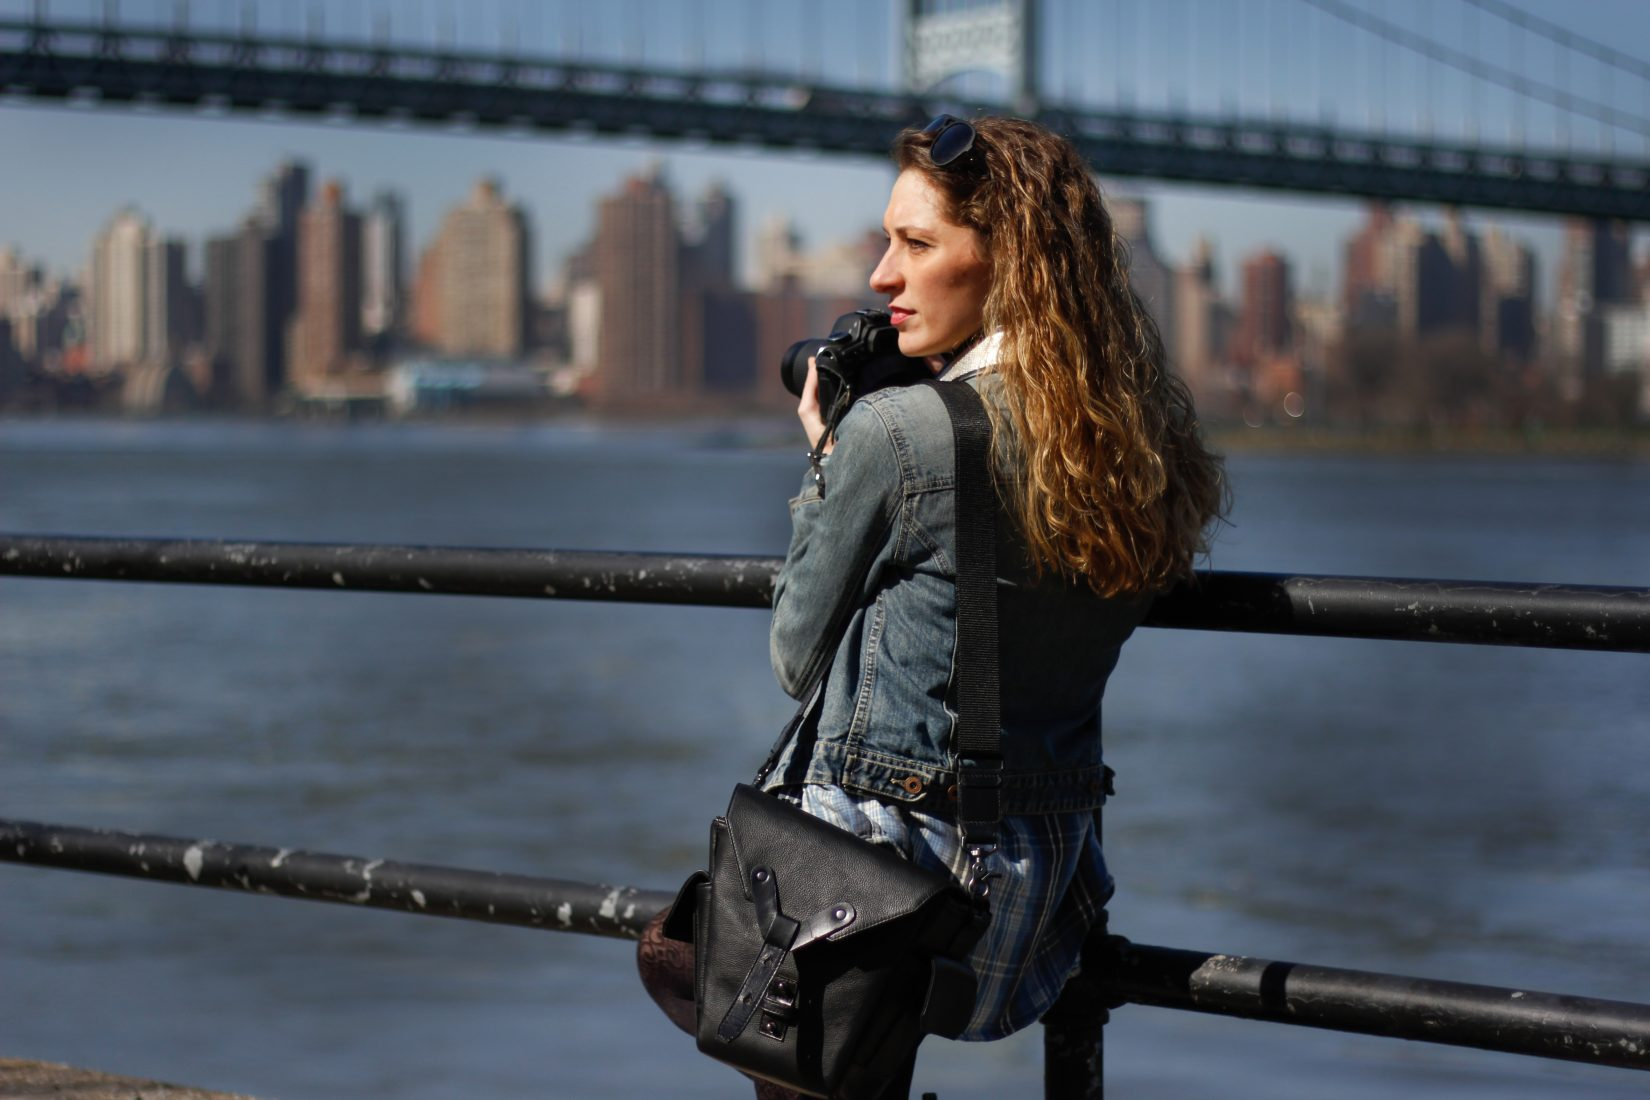 Heavy Leather NYC Is The Right Fit For City Photography